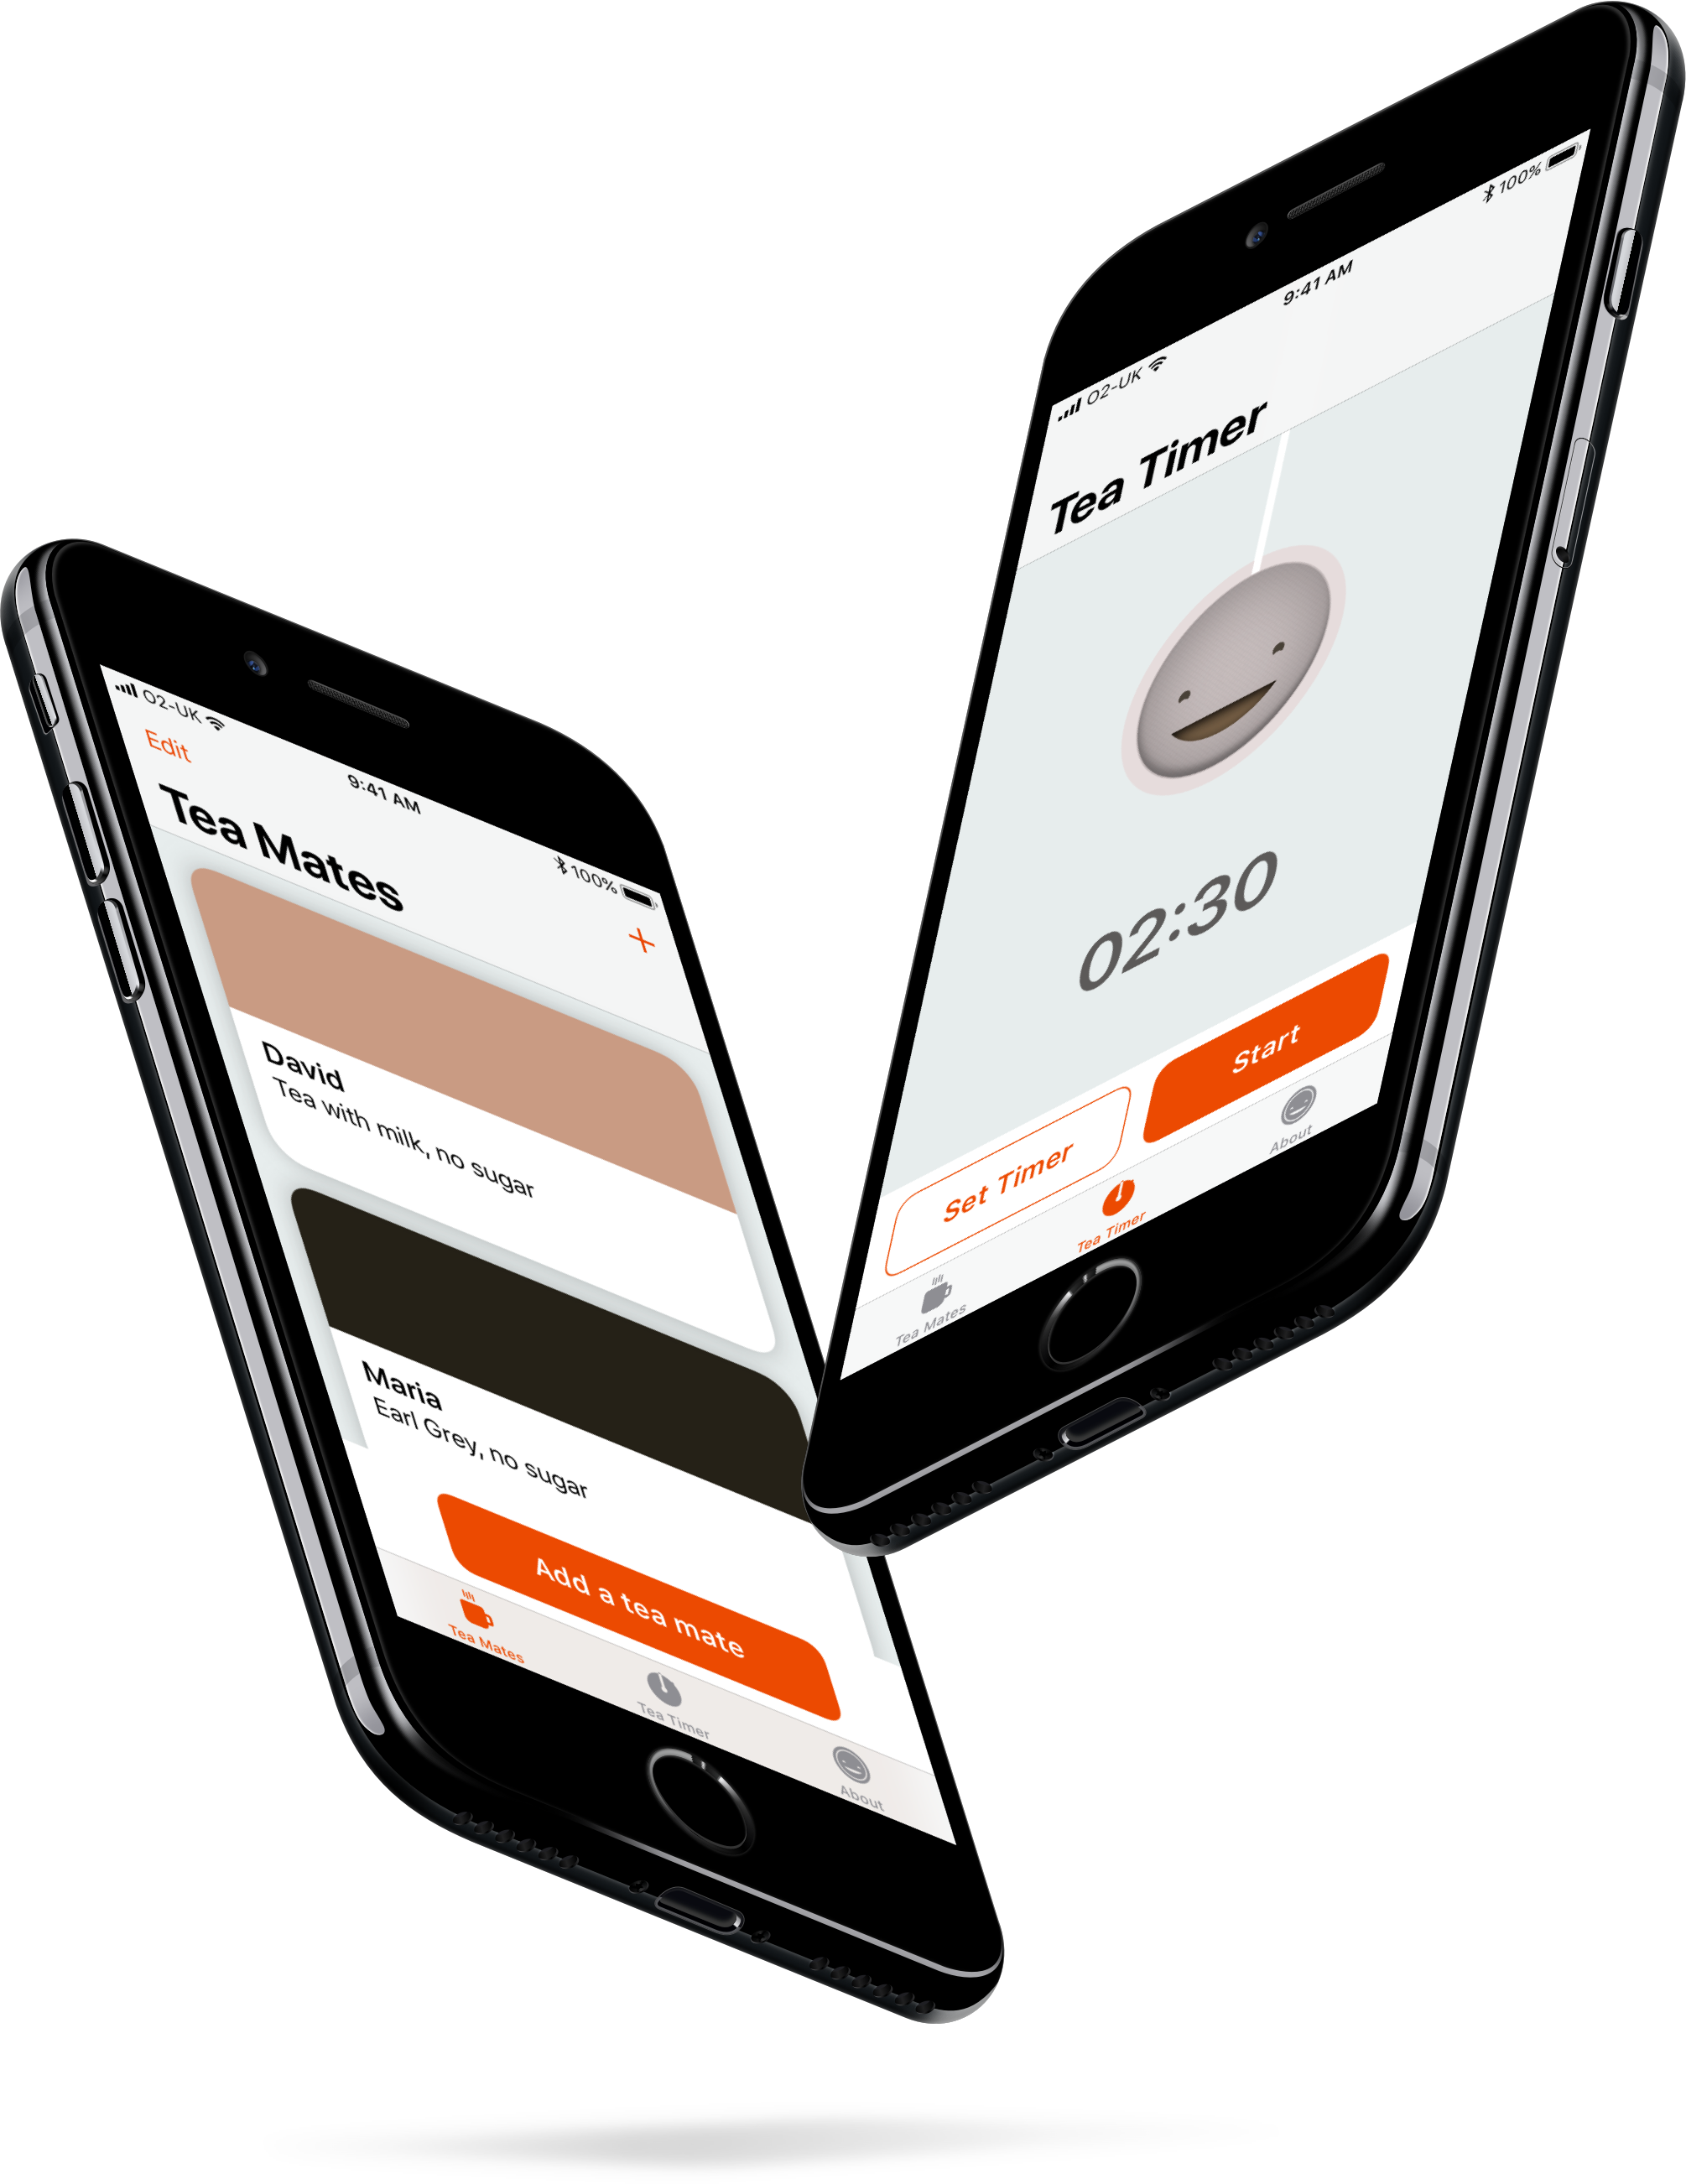 2 iPhones showing BrewTeaFul app